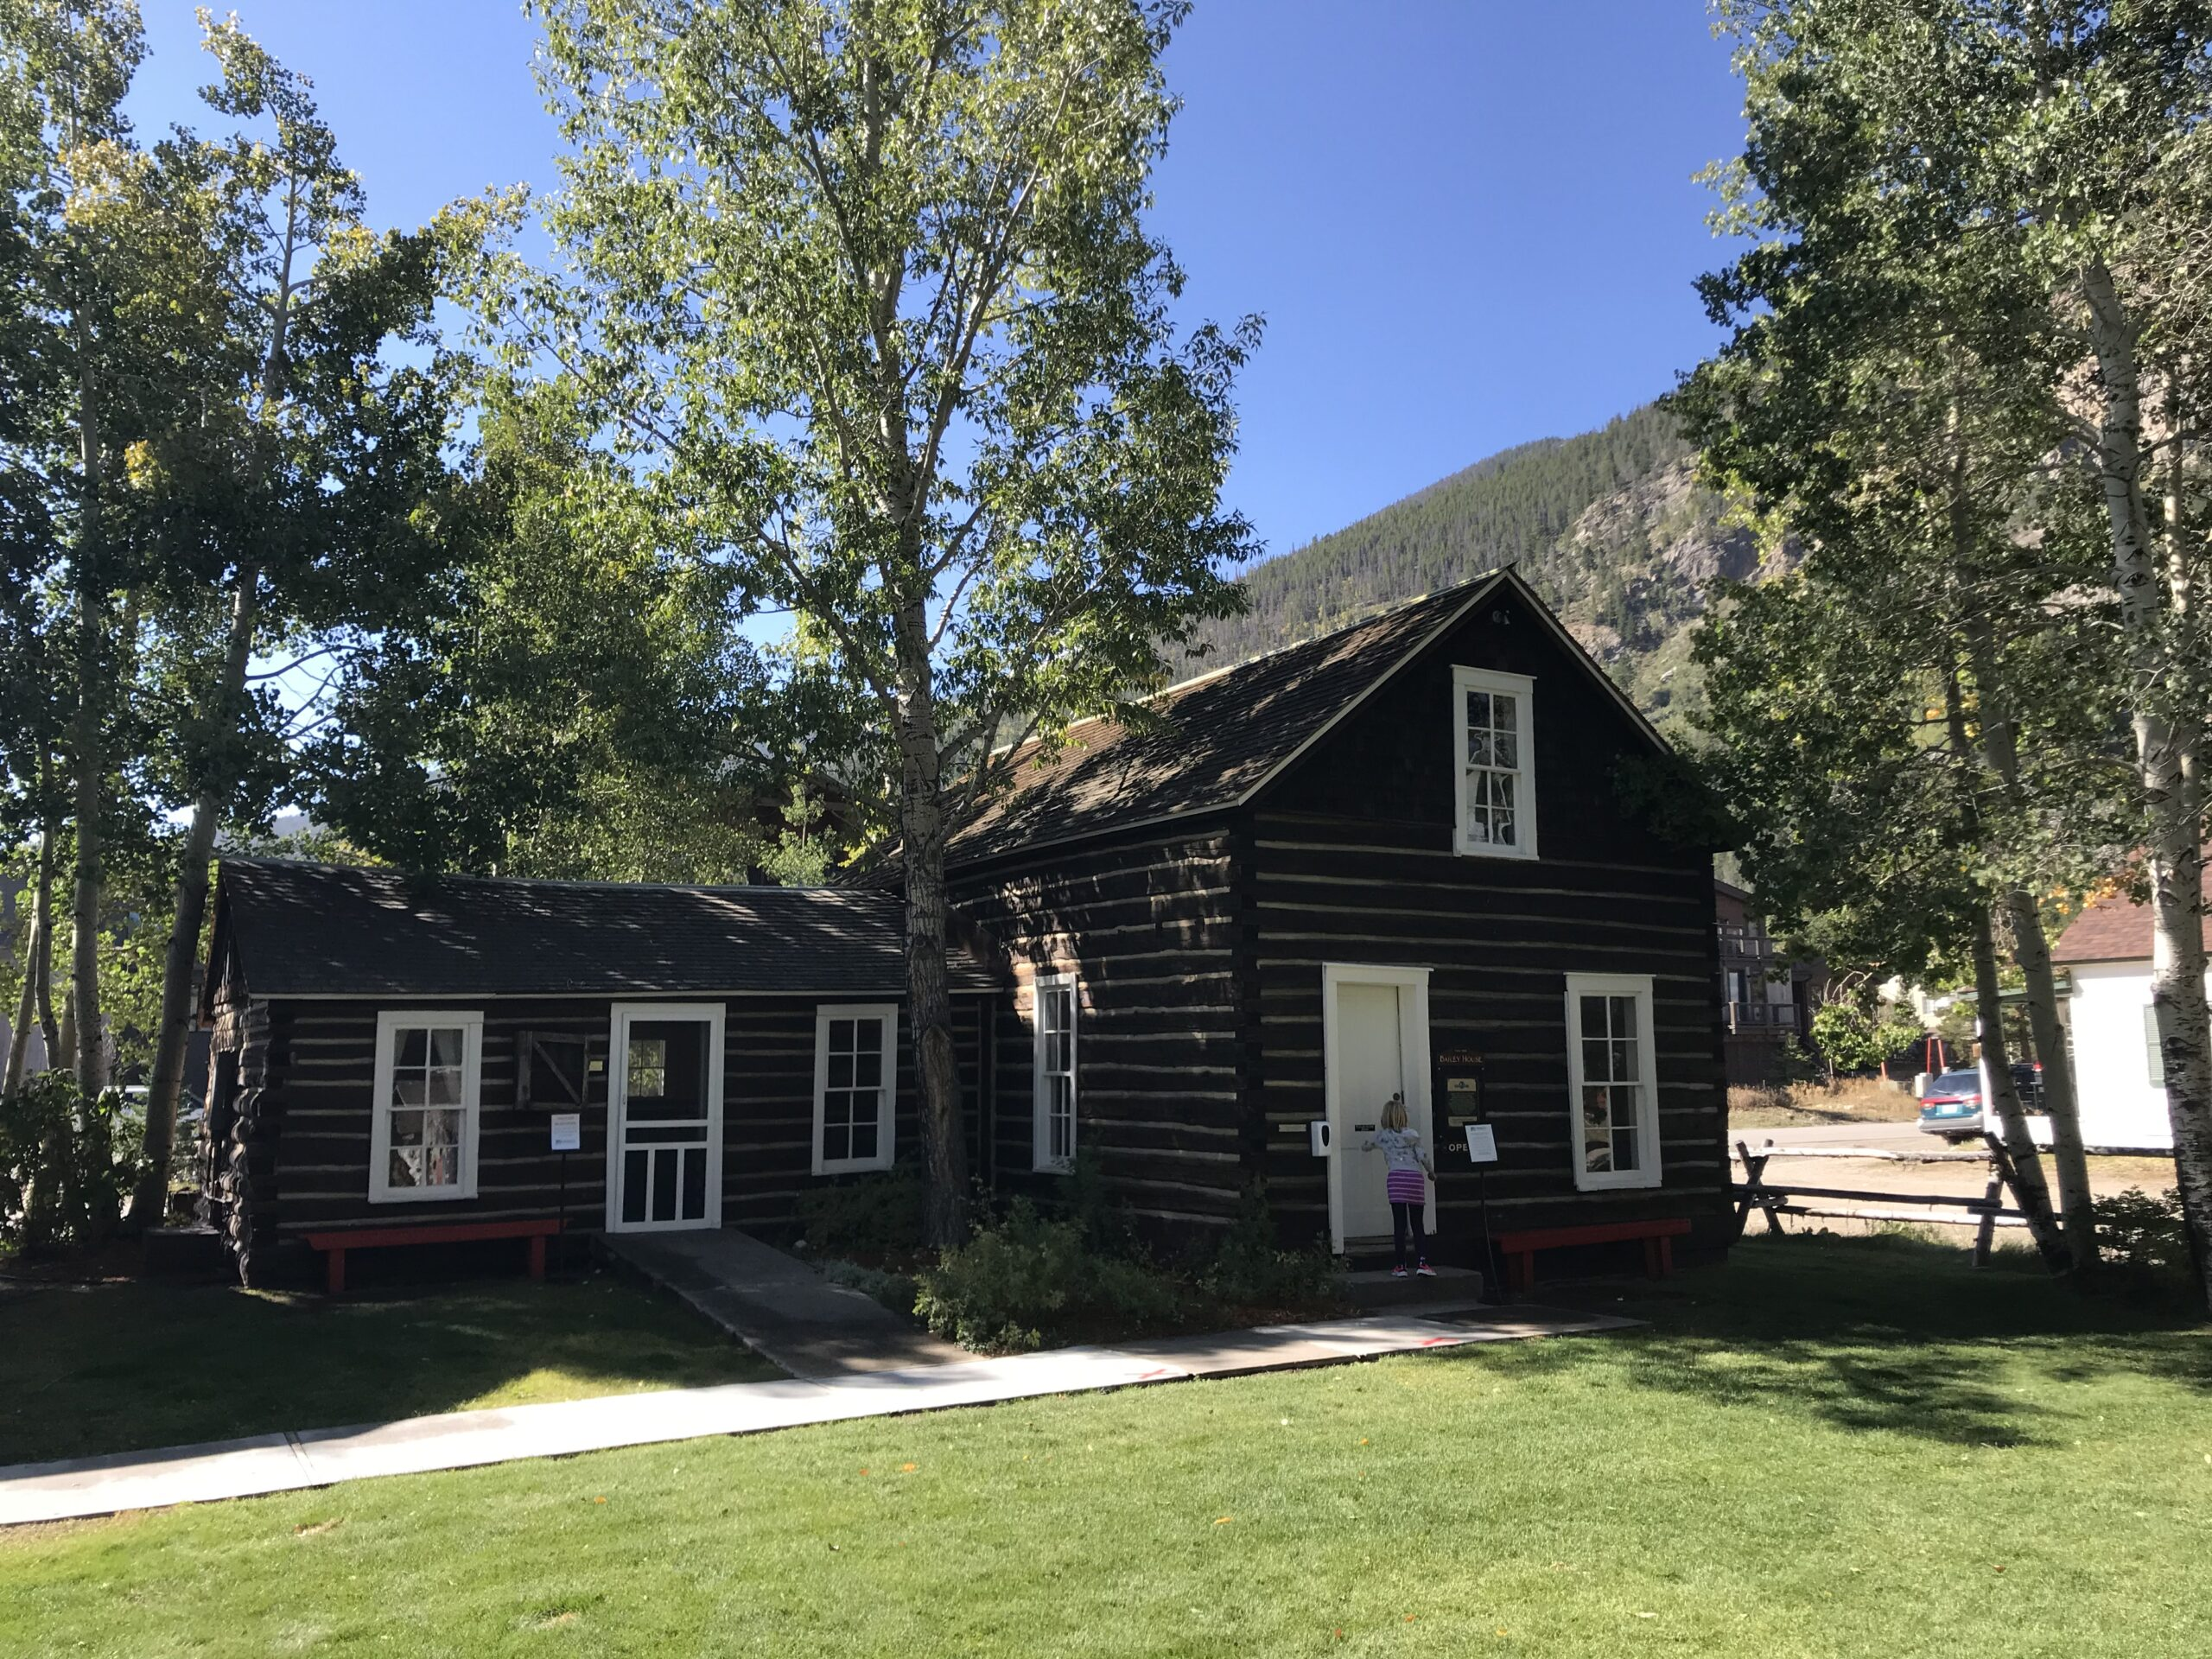 Frisco Historic Park & Museum, one of the fun free things to do in Frisco CO